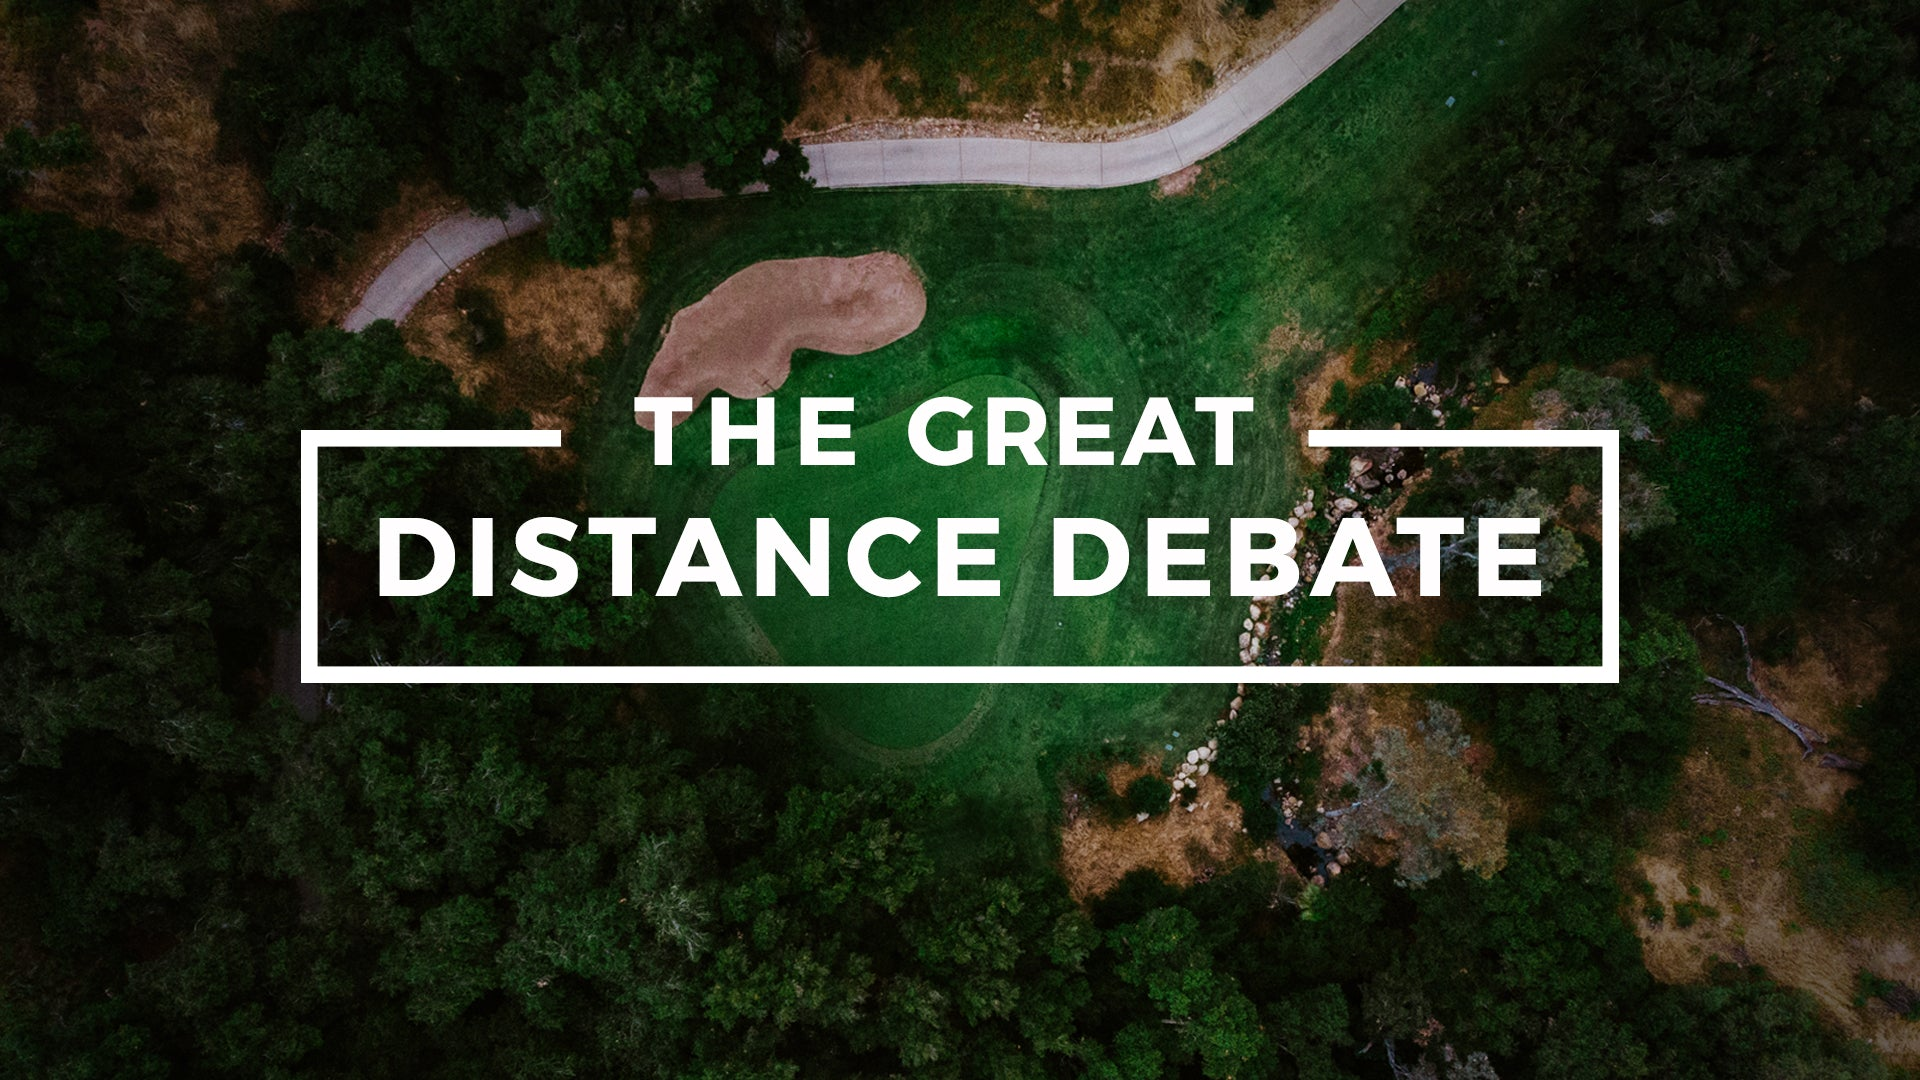 Dean weighs in on the Distance Debate